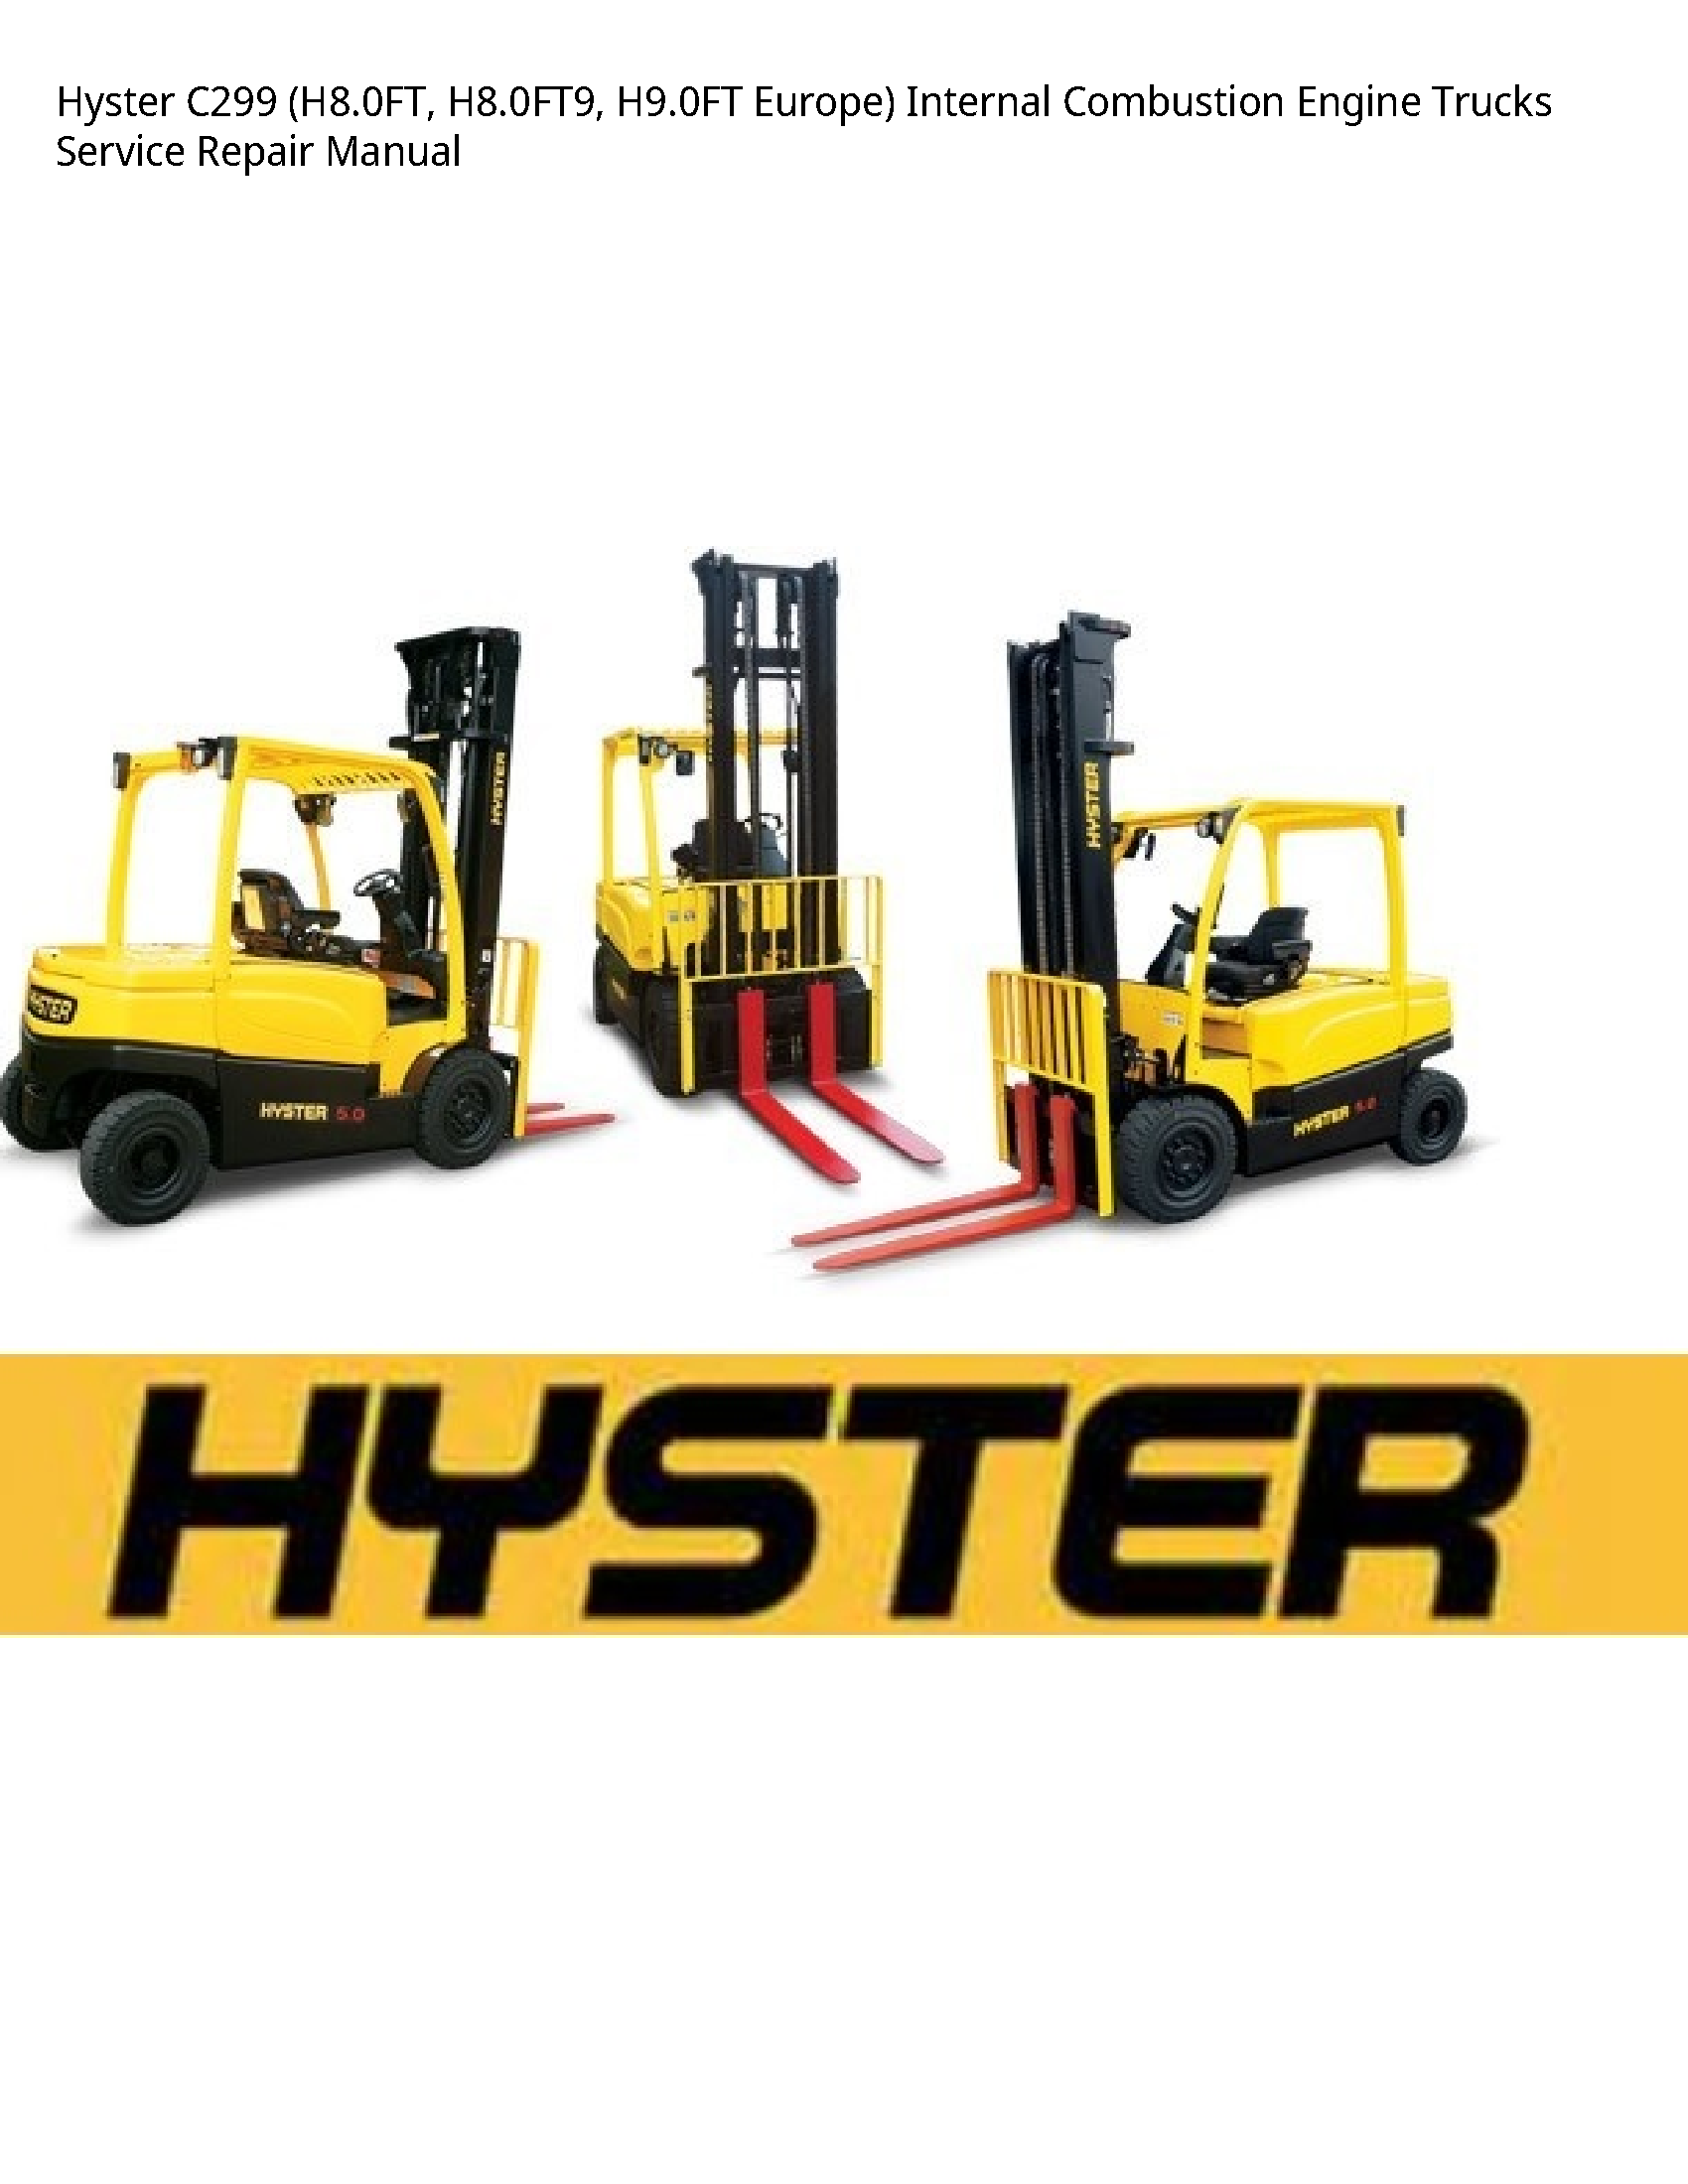 Hyster C299 Europe) Internal Combustion Engine Trucks manual